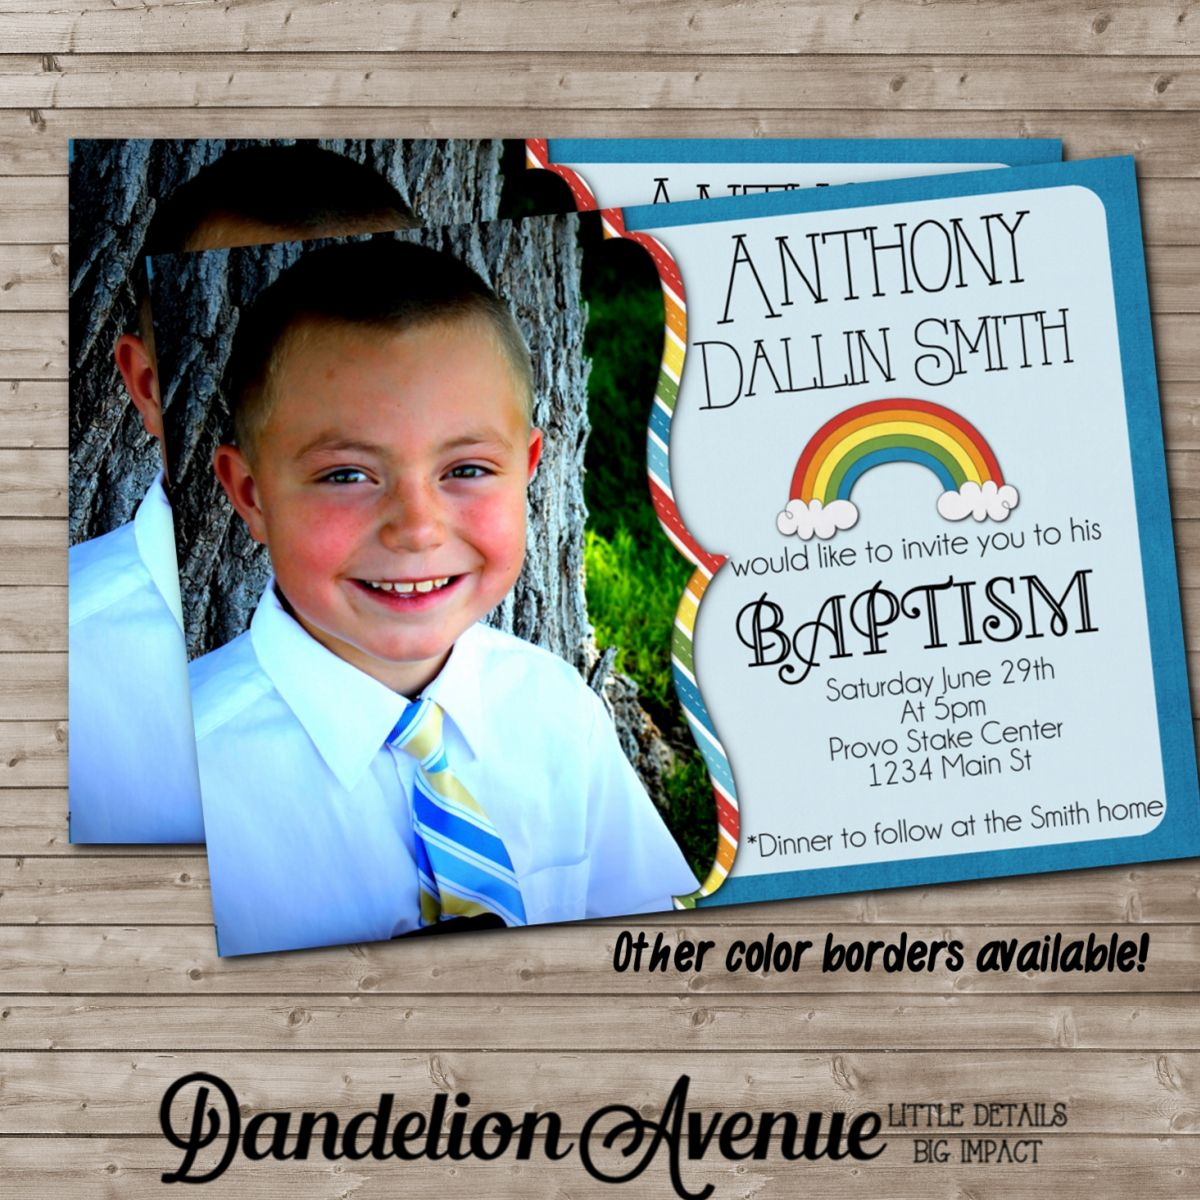 004 Stirring Ld Baptism Invitation Template Design Full